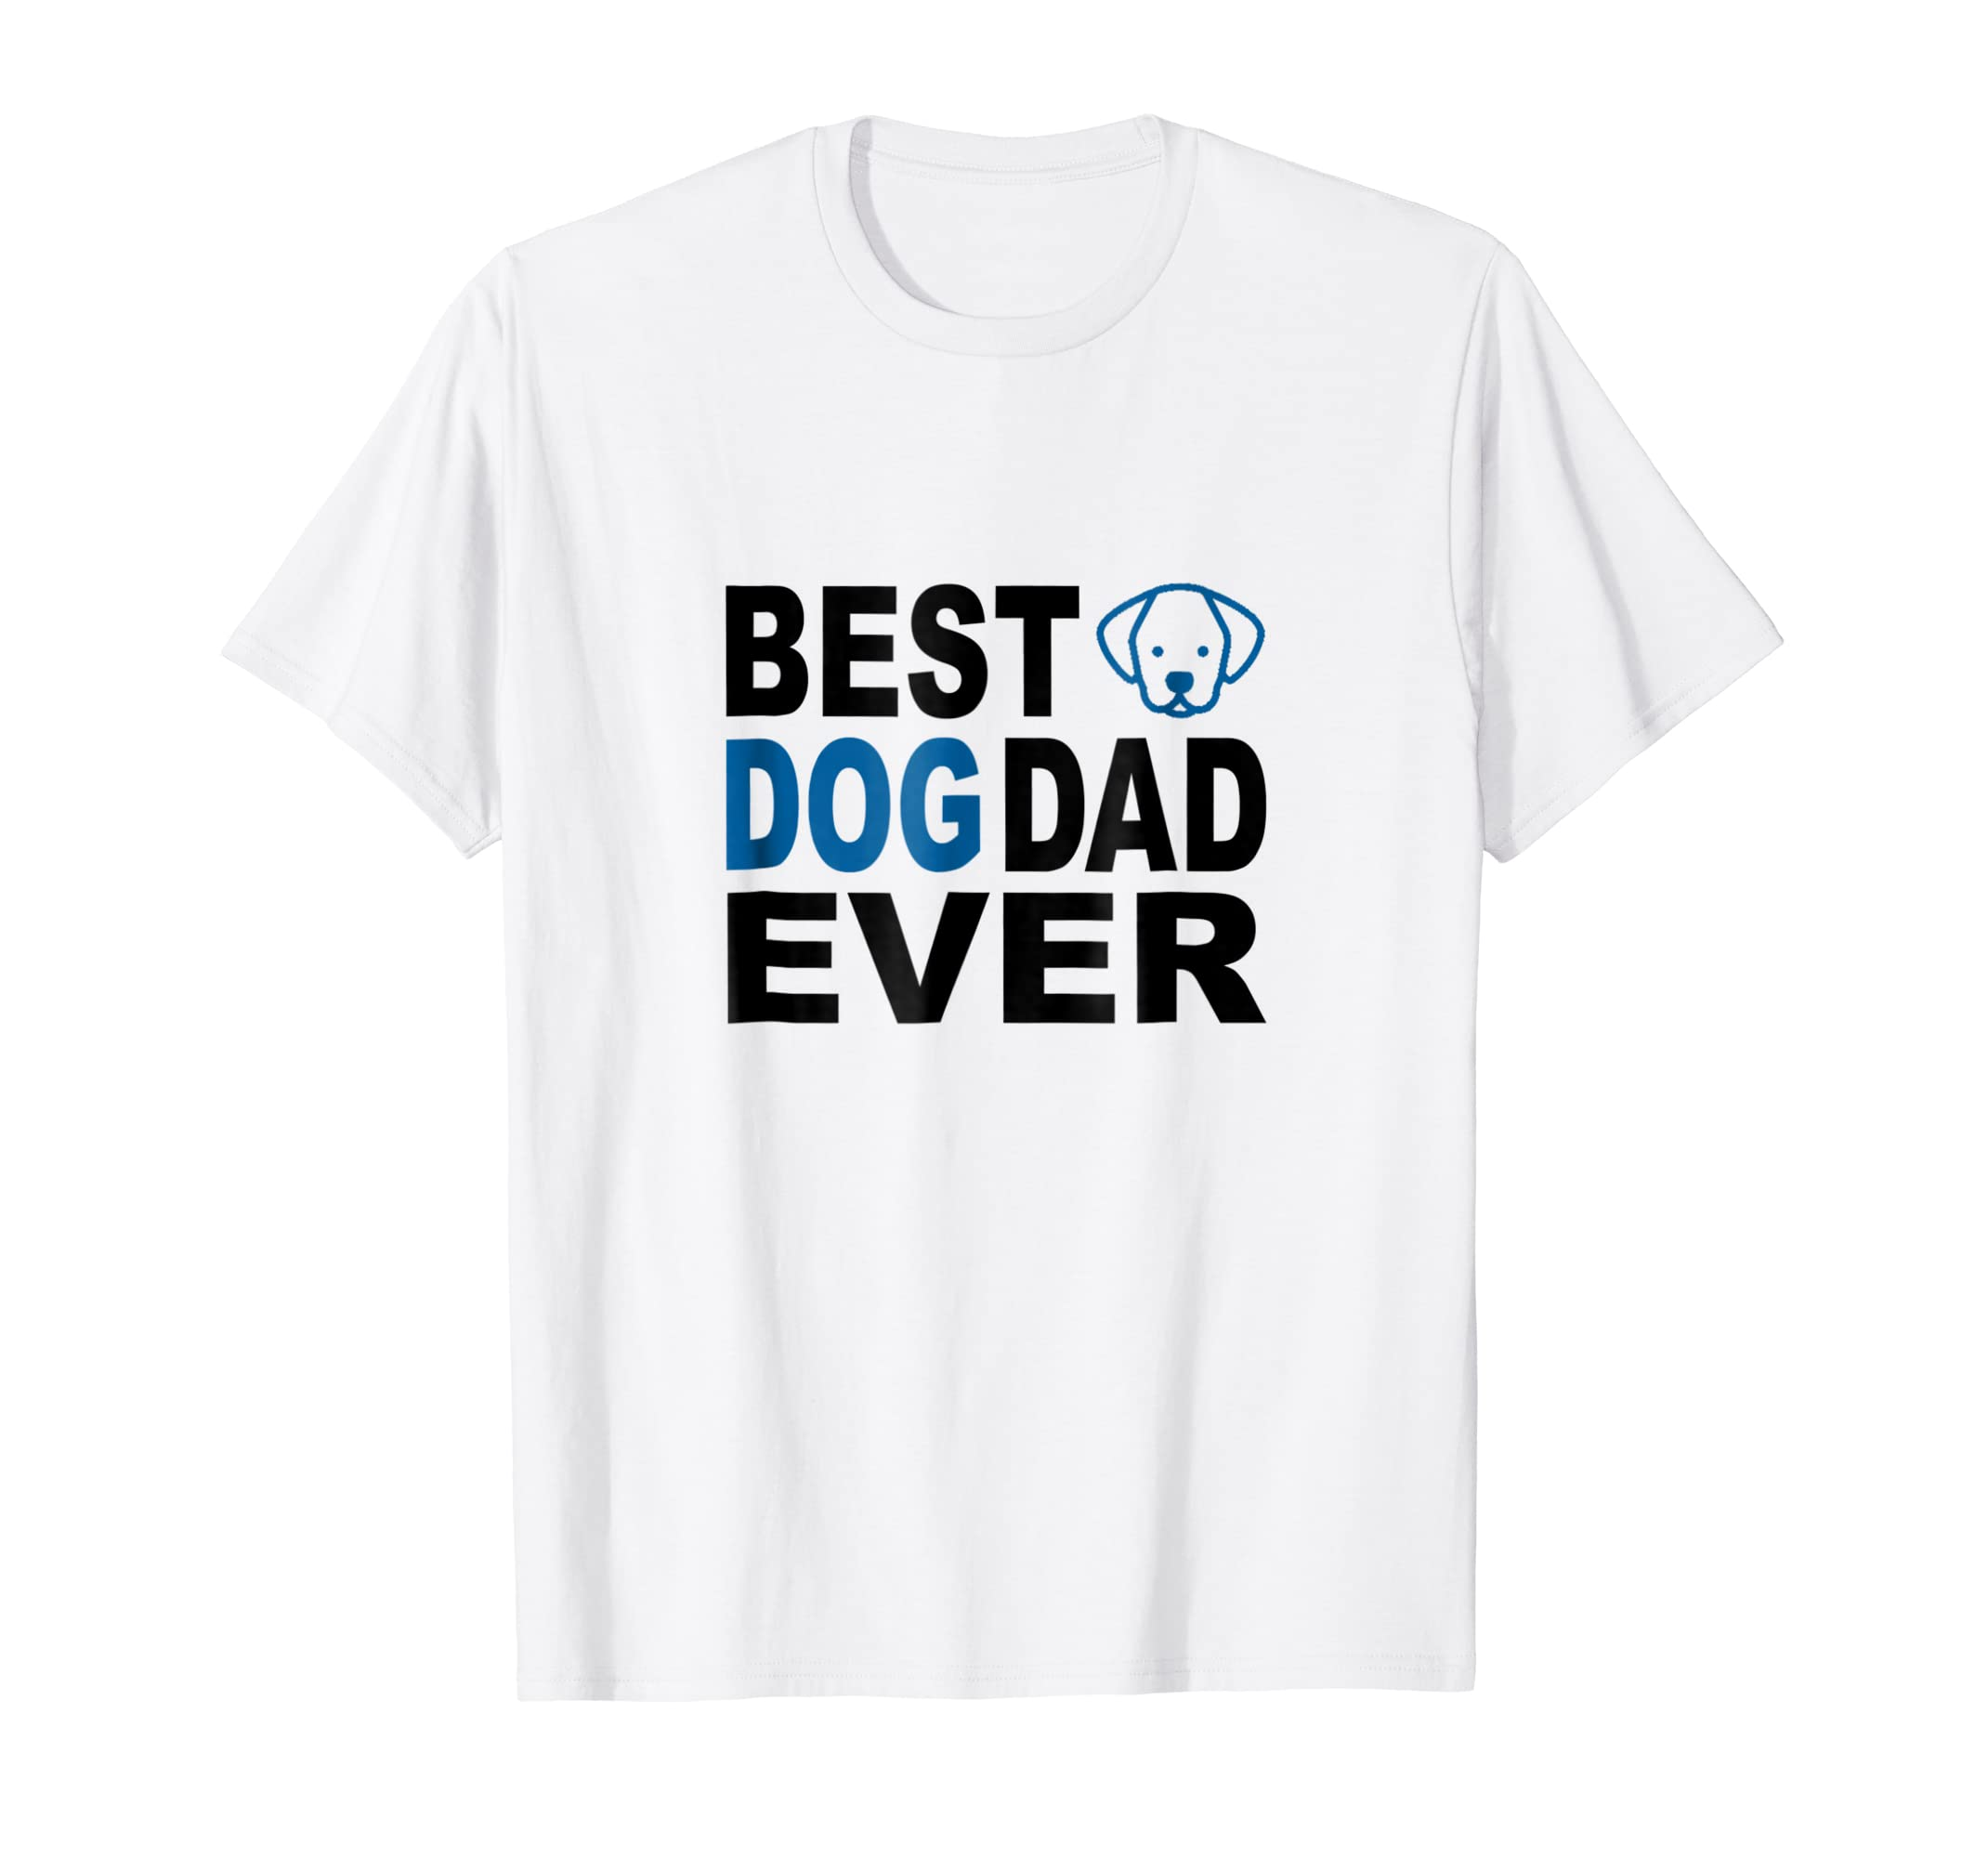 8f98cecb9 Gift Ideas for Dog Dad T-Shirt Dog Lovers Tee Shirt